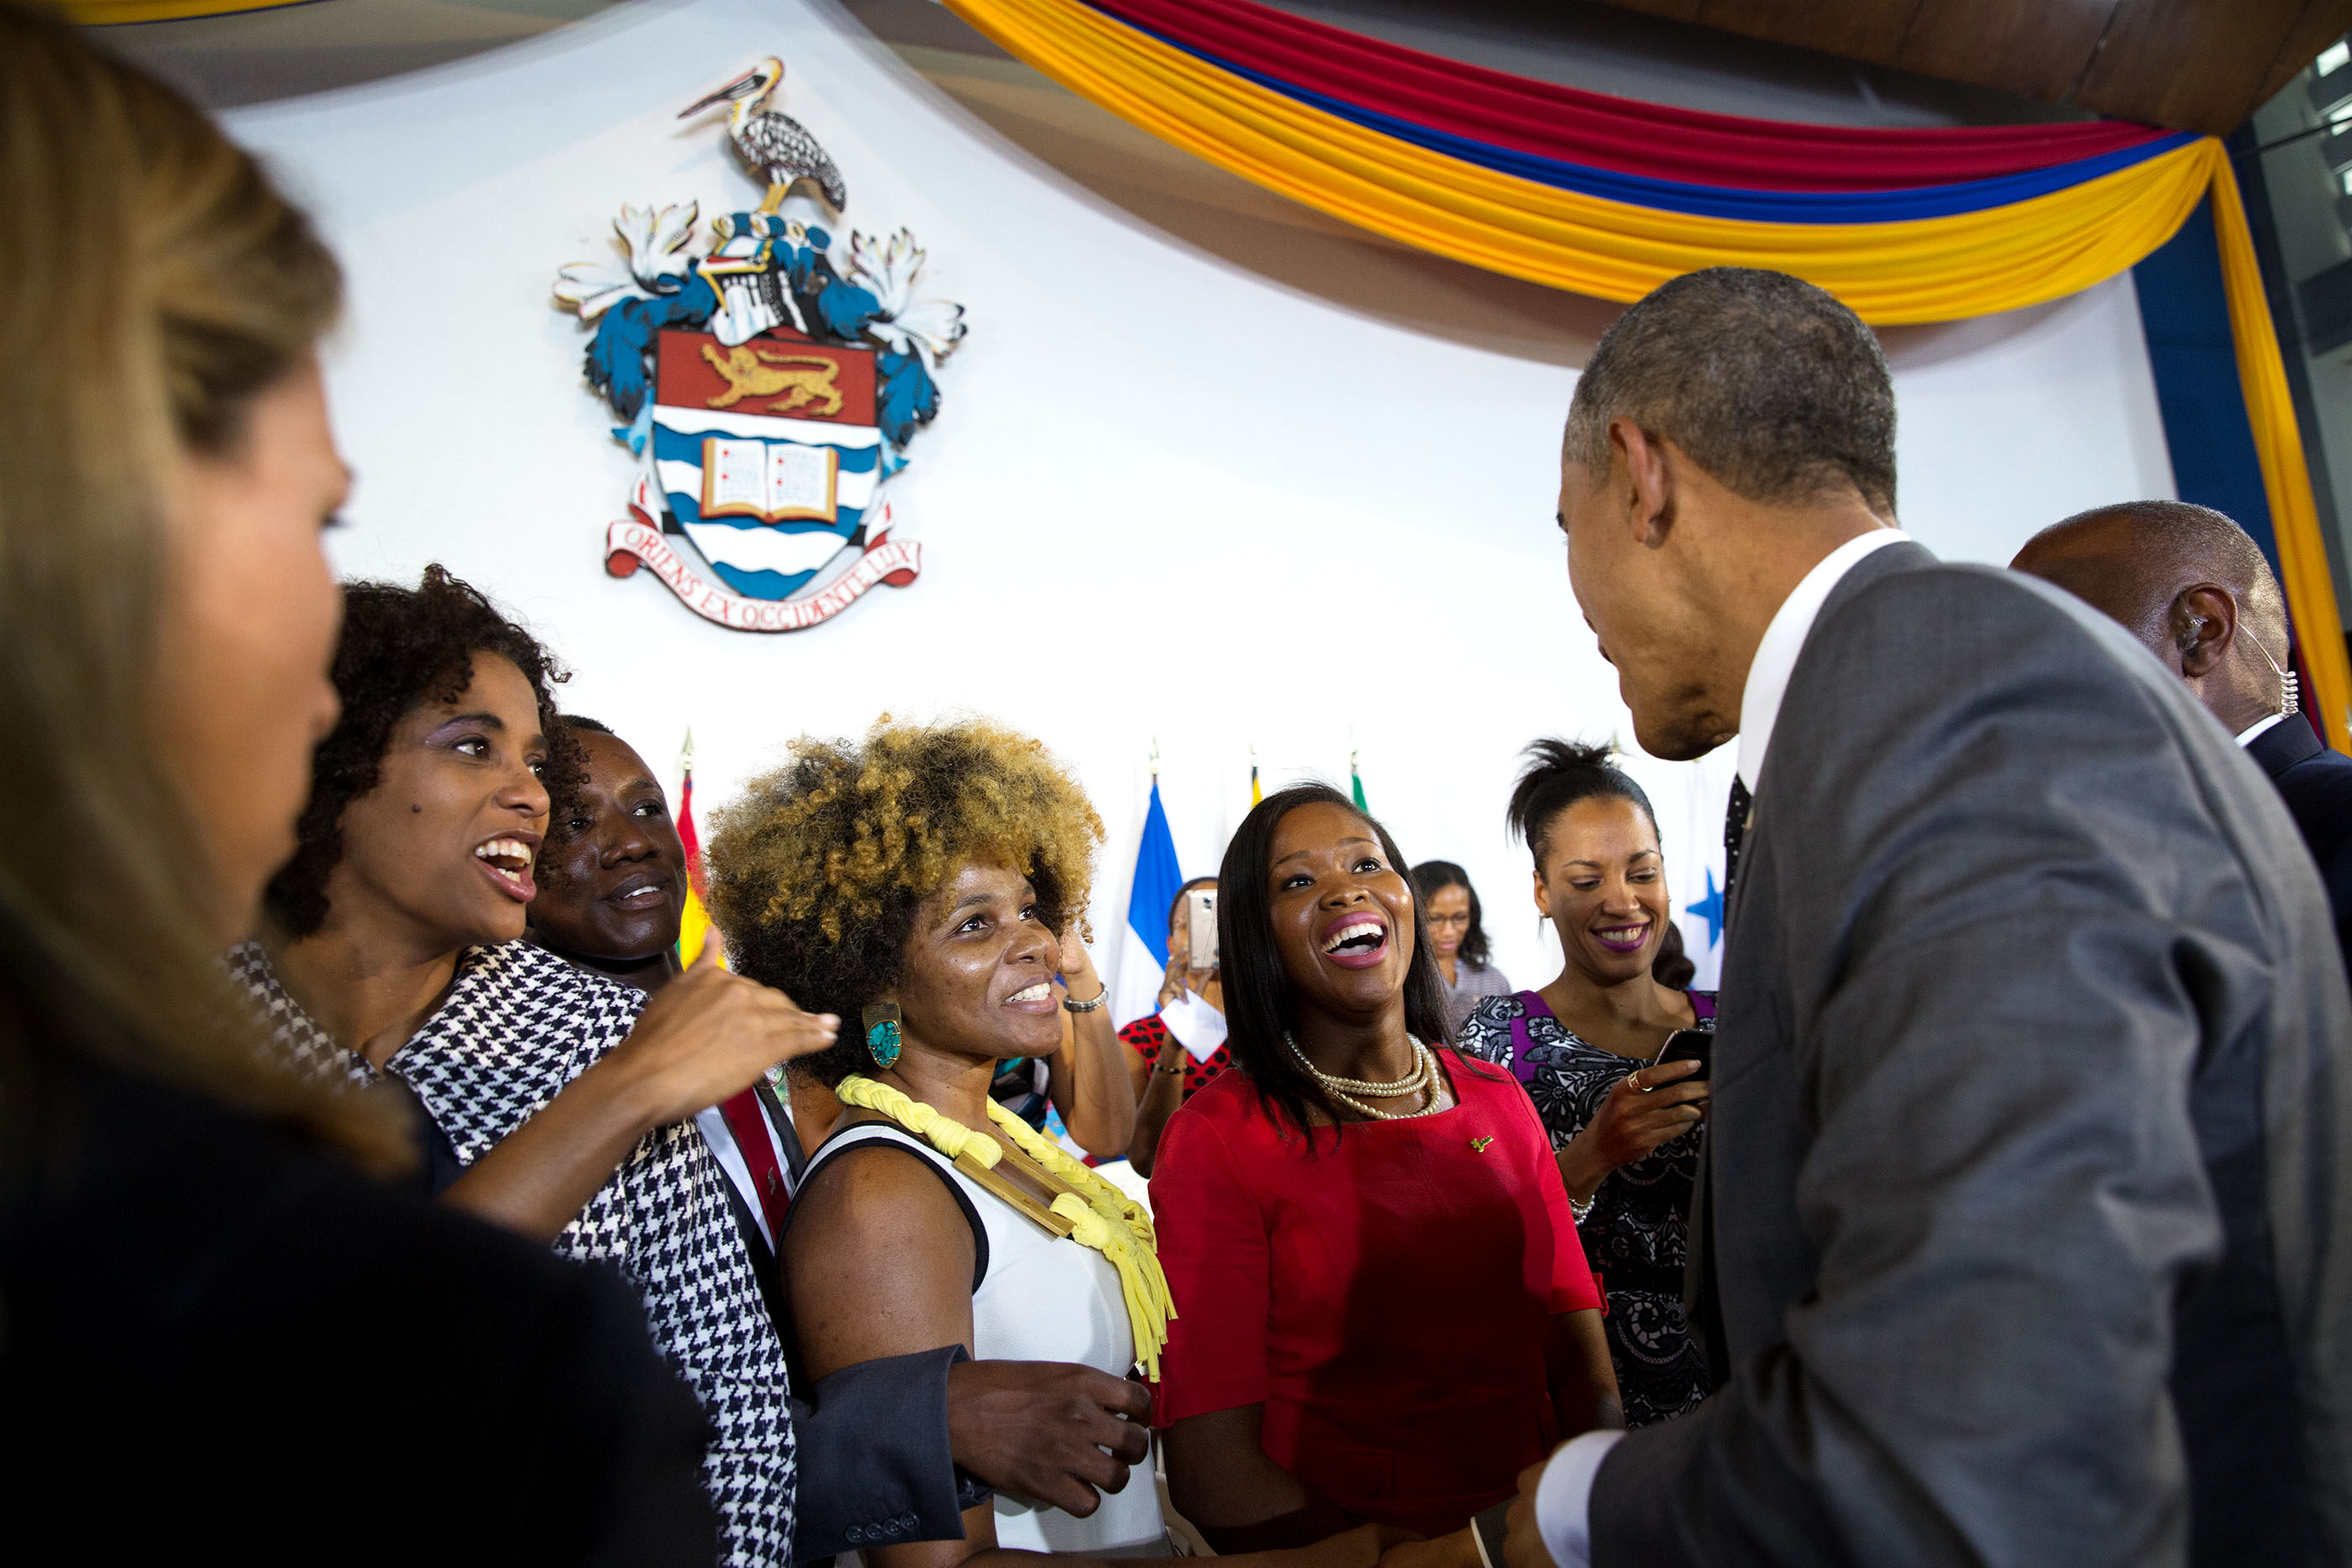 The President greets audience members following the town hall. (Official White House Photo by Pete Souza)